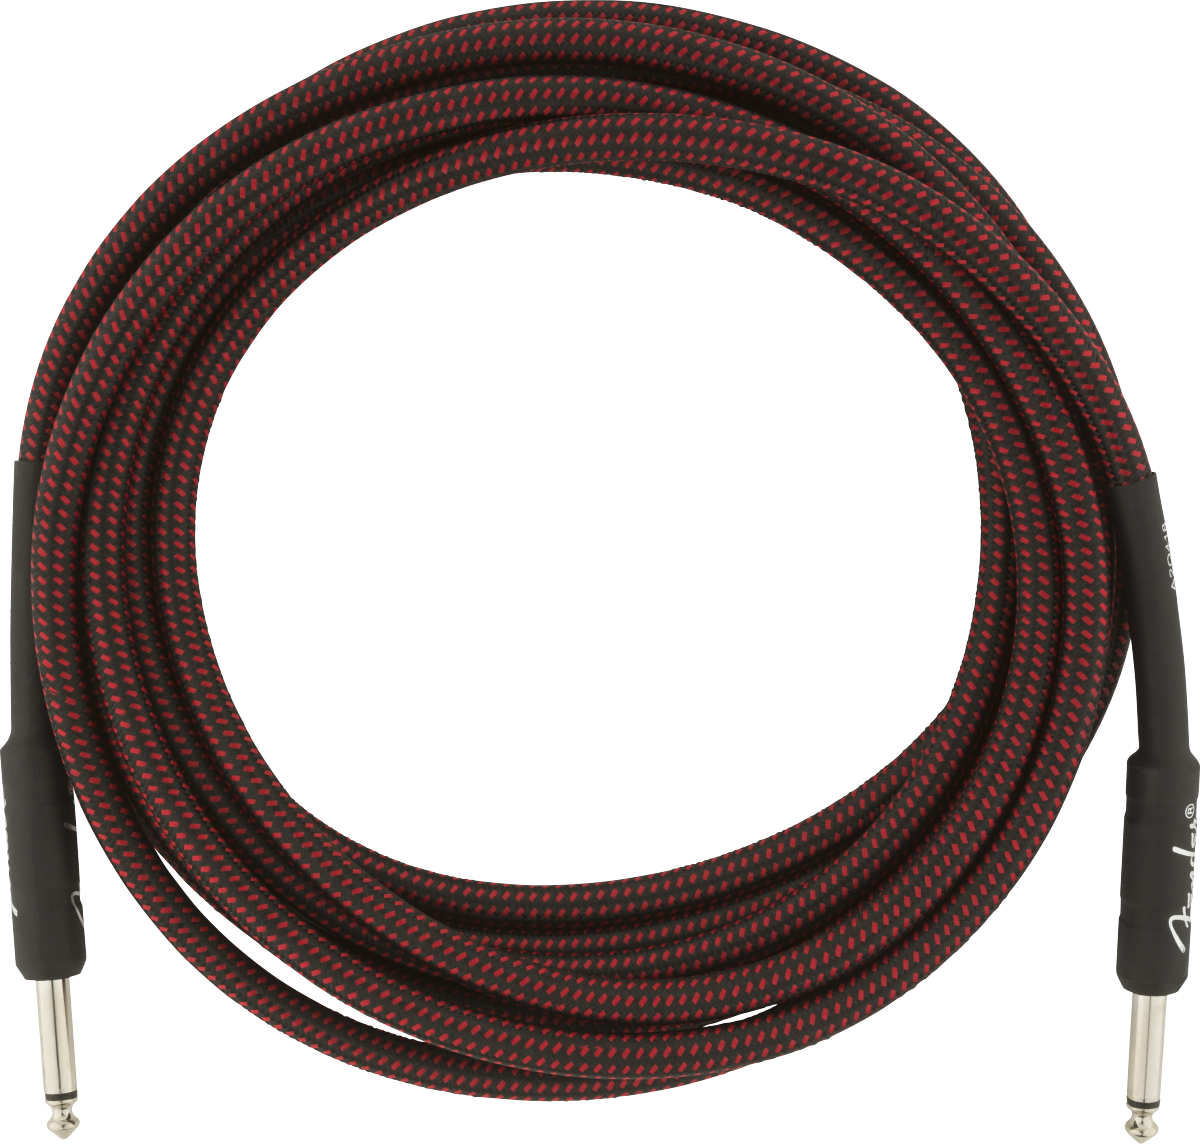 Fender Professional Series Instrument Cable, Tweed